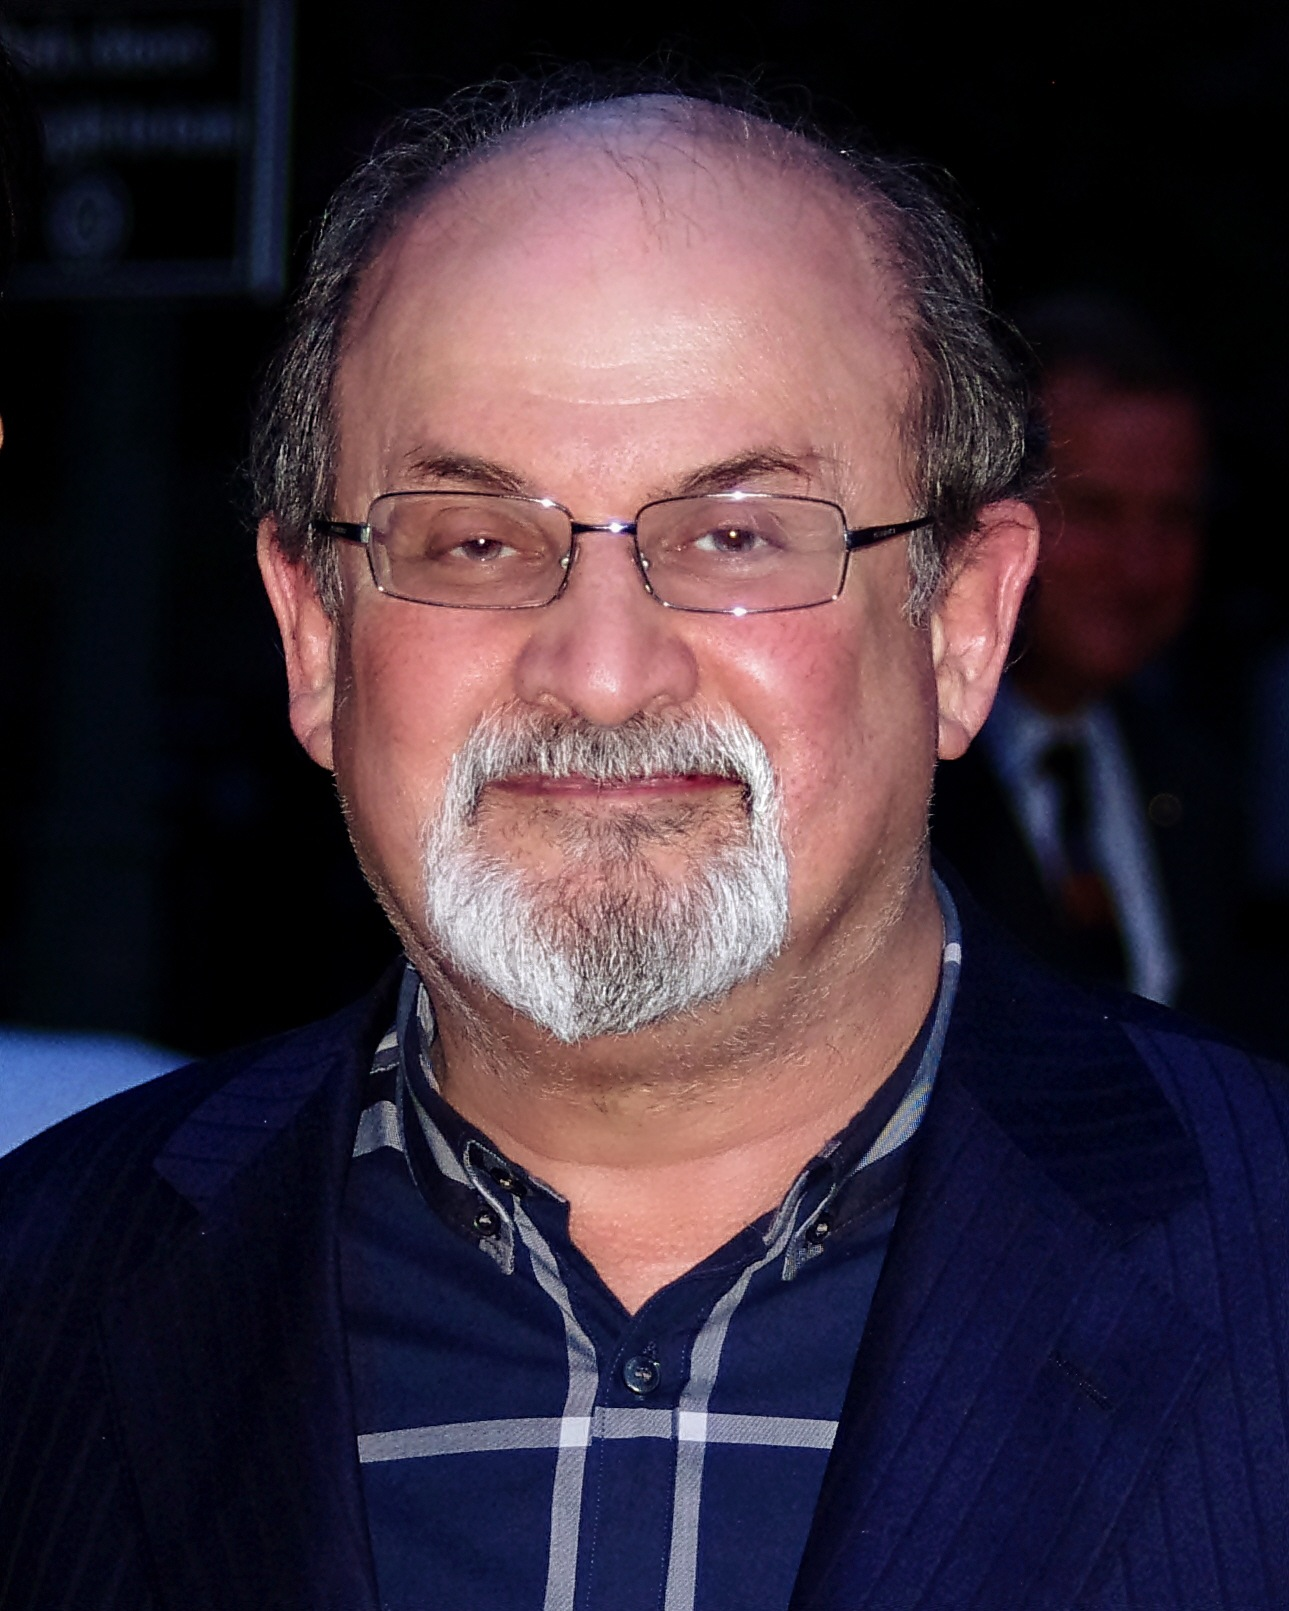 https://upload.wikimedia.org/wikipedia/commons/1/1d/Salman_Rushdie_2012_Shankbone-2.jpg